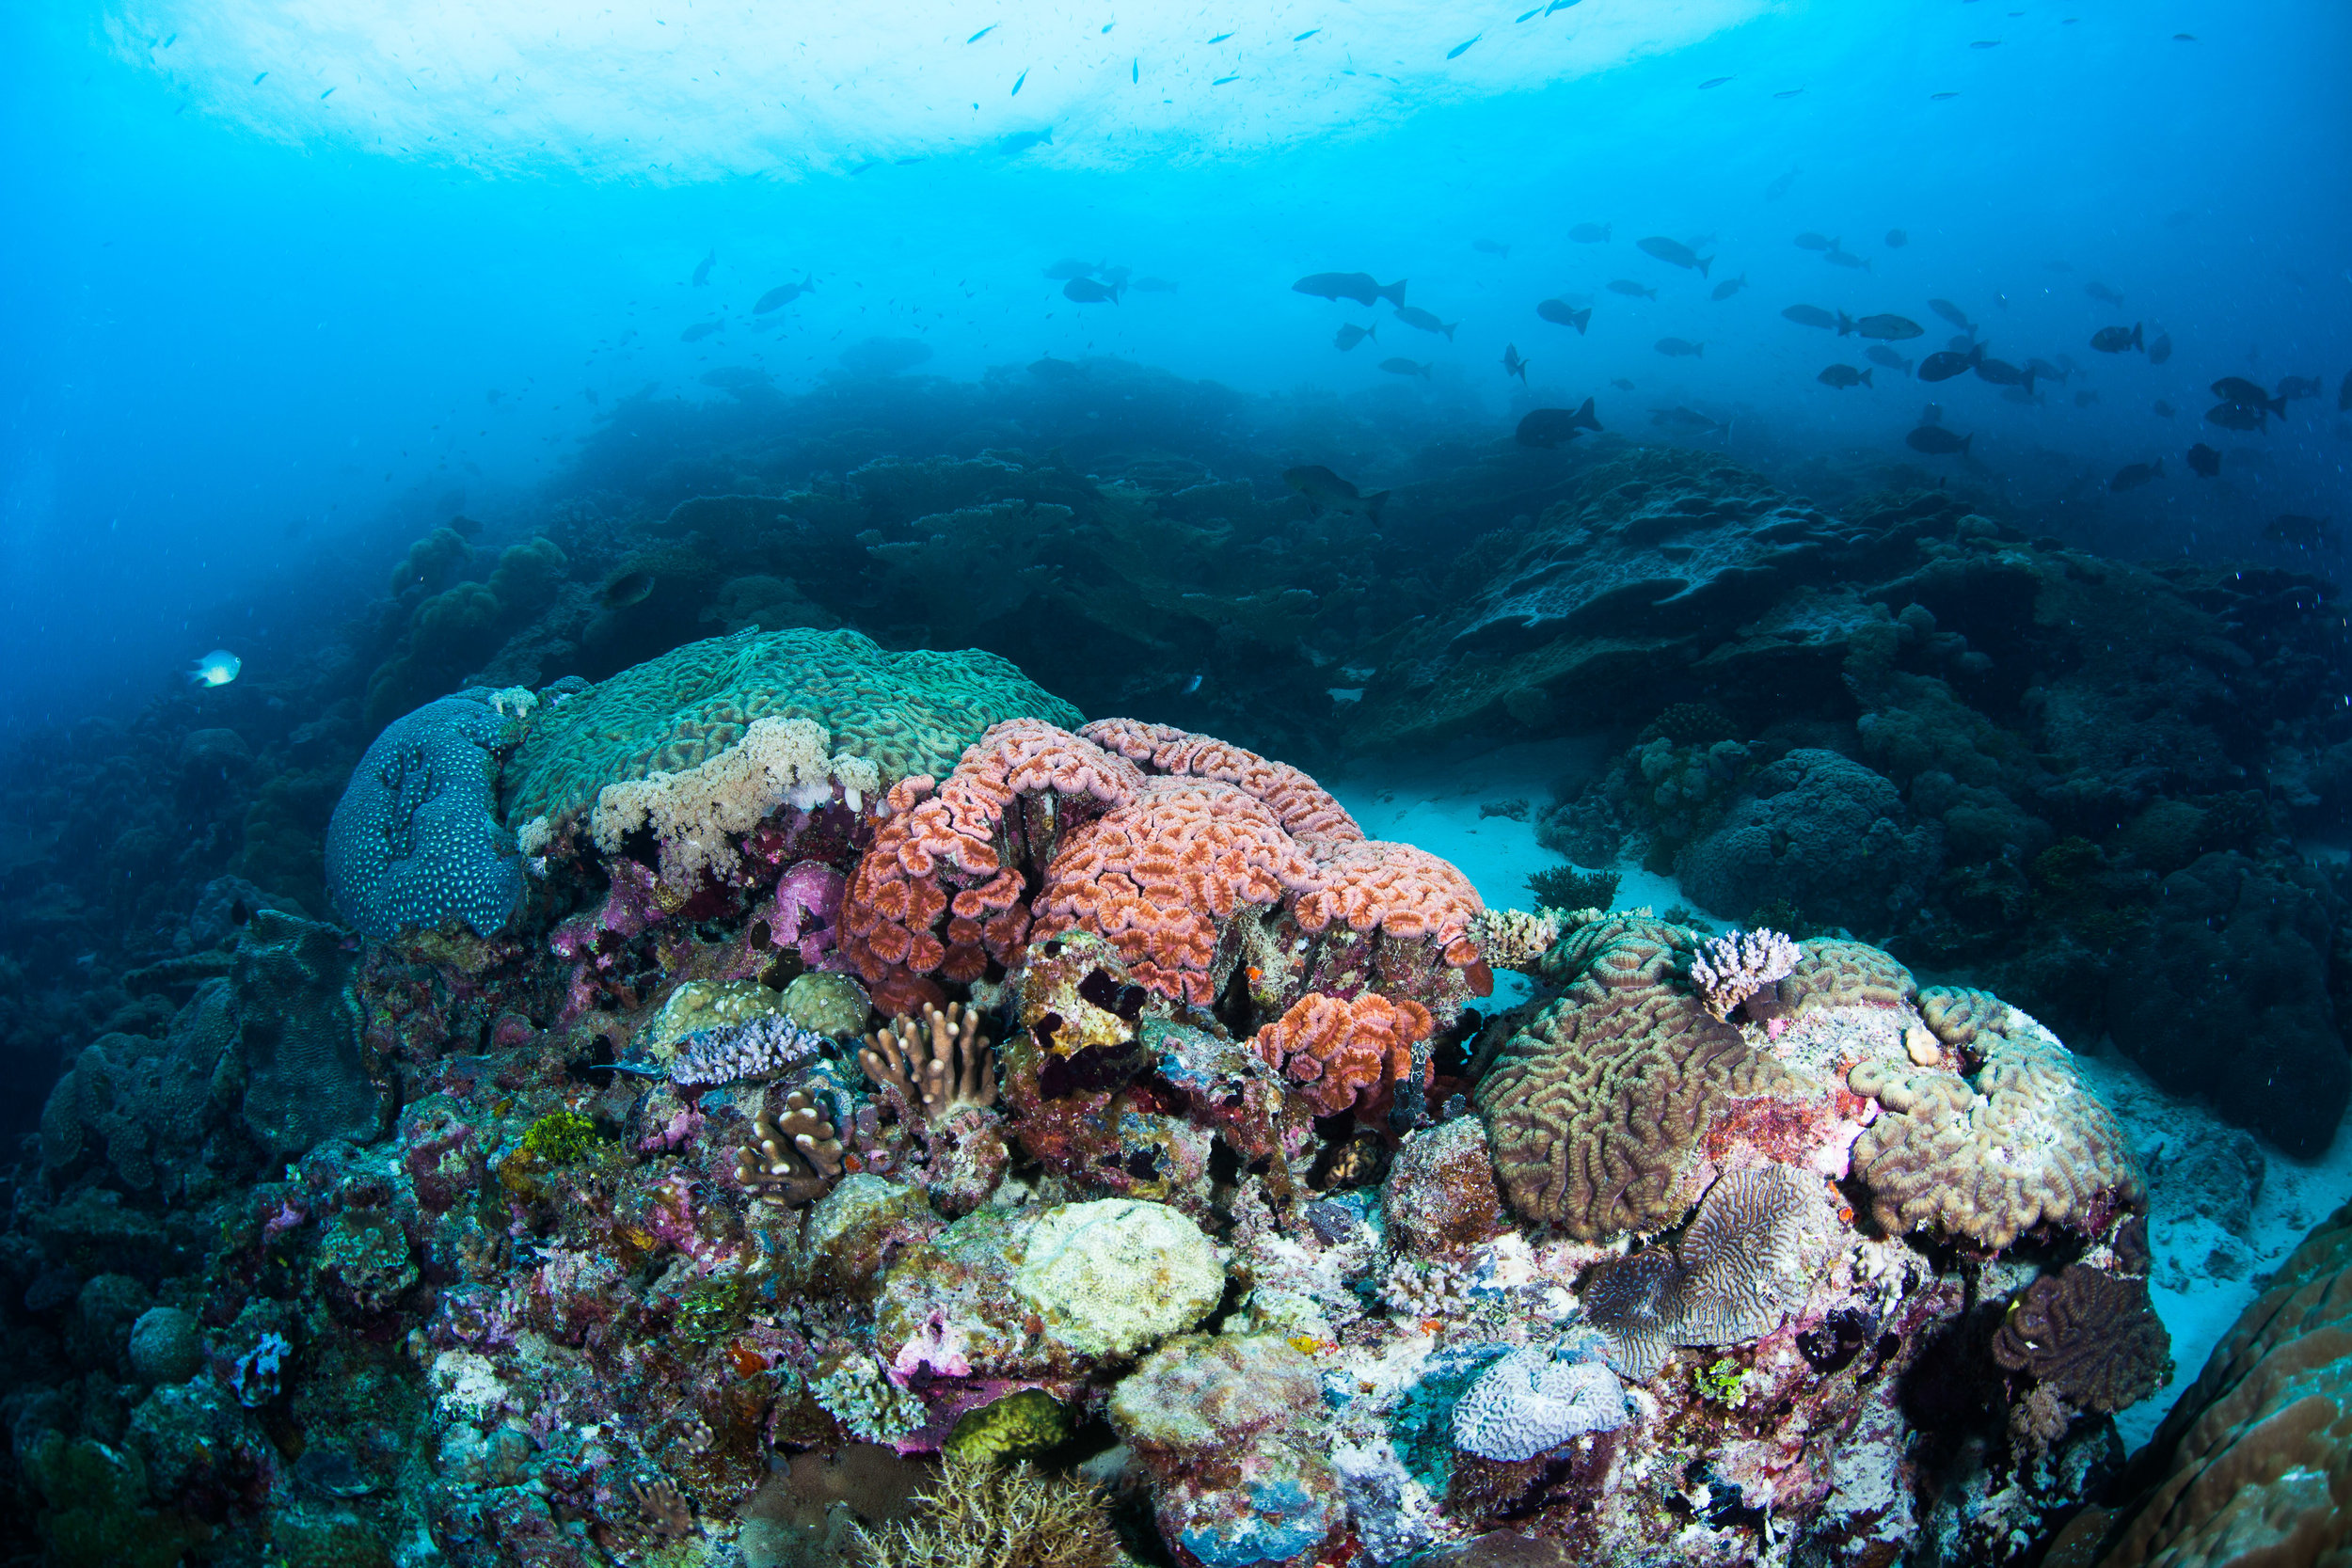 A stunning coral reef in the Chagos Archipelago, a perfect backdrop for fieldwork misfortune. ©Christophe Balliache/The Ocean Agency